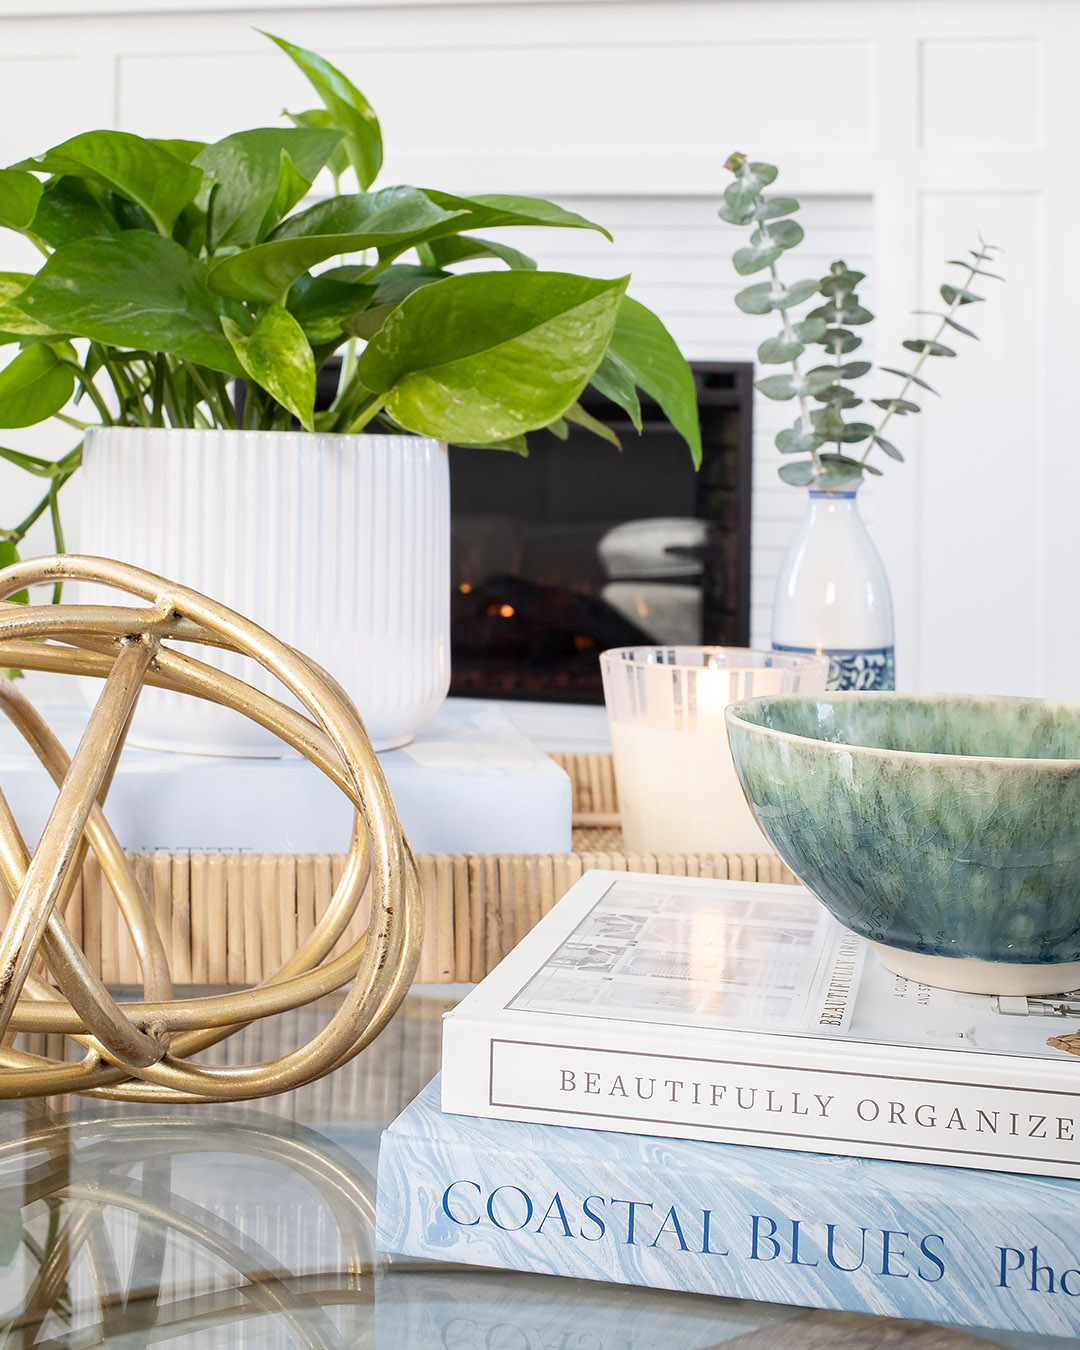 Placing plants around your house can be so helpful for your mood and energy during the colder months. Here are my favourite houseplants to beat the winter blahs!